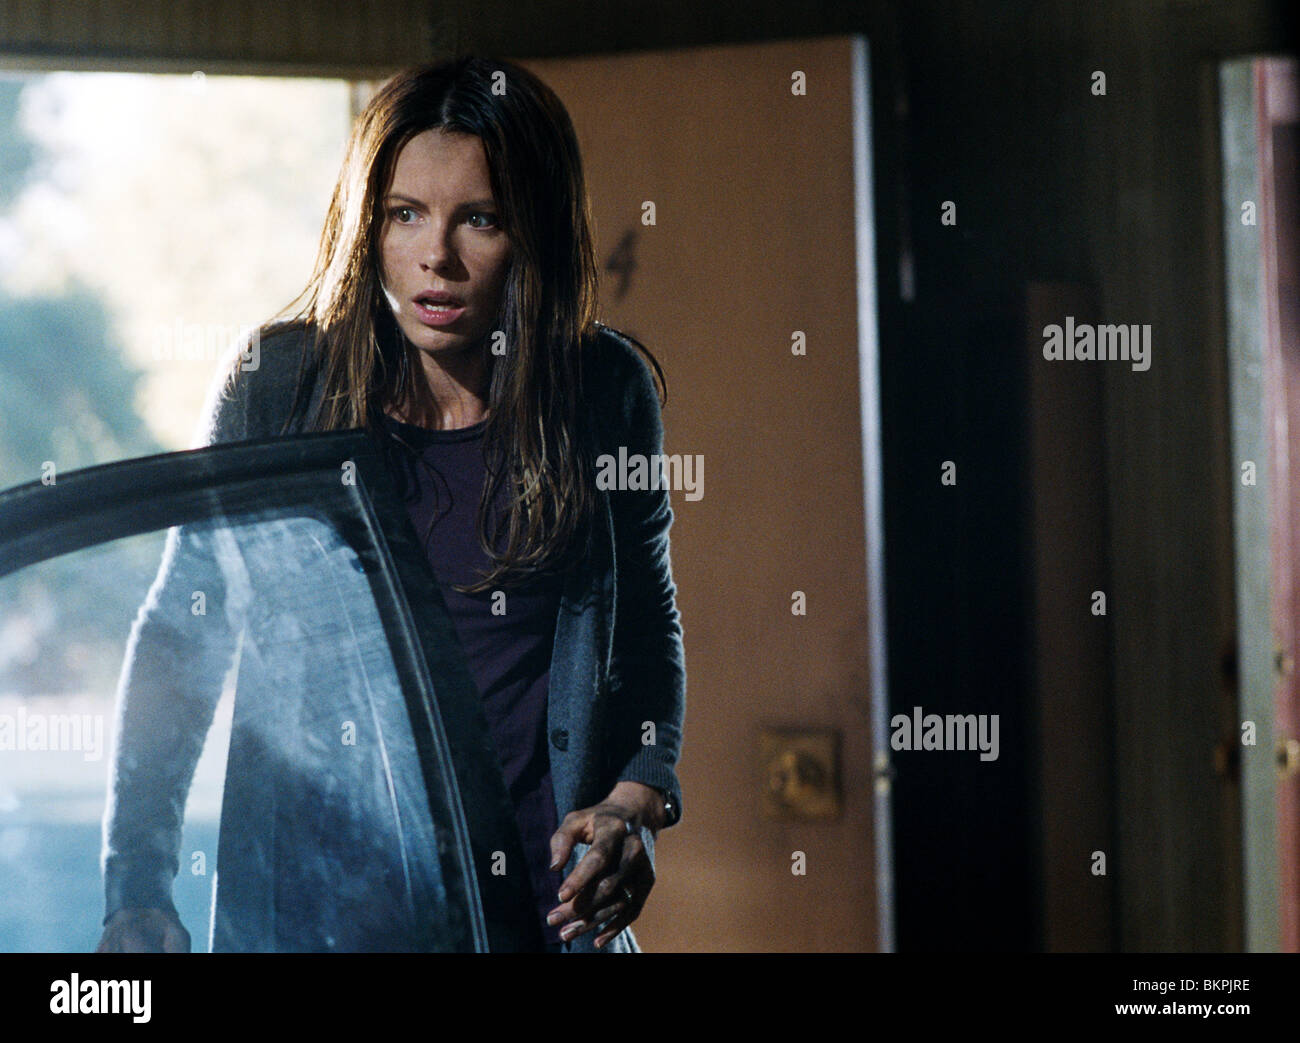 VACANCY (2007) KATE BECKINSALE VACA 001-08 - Stock Image